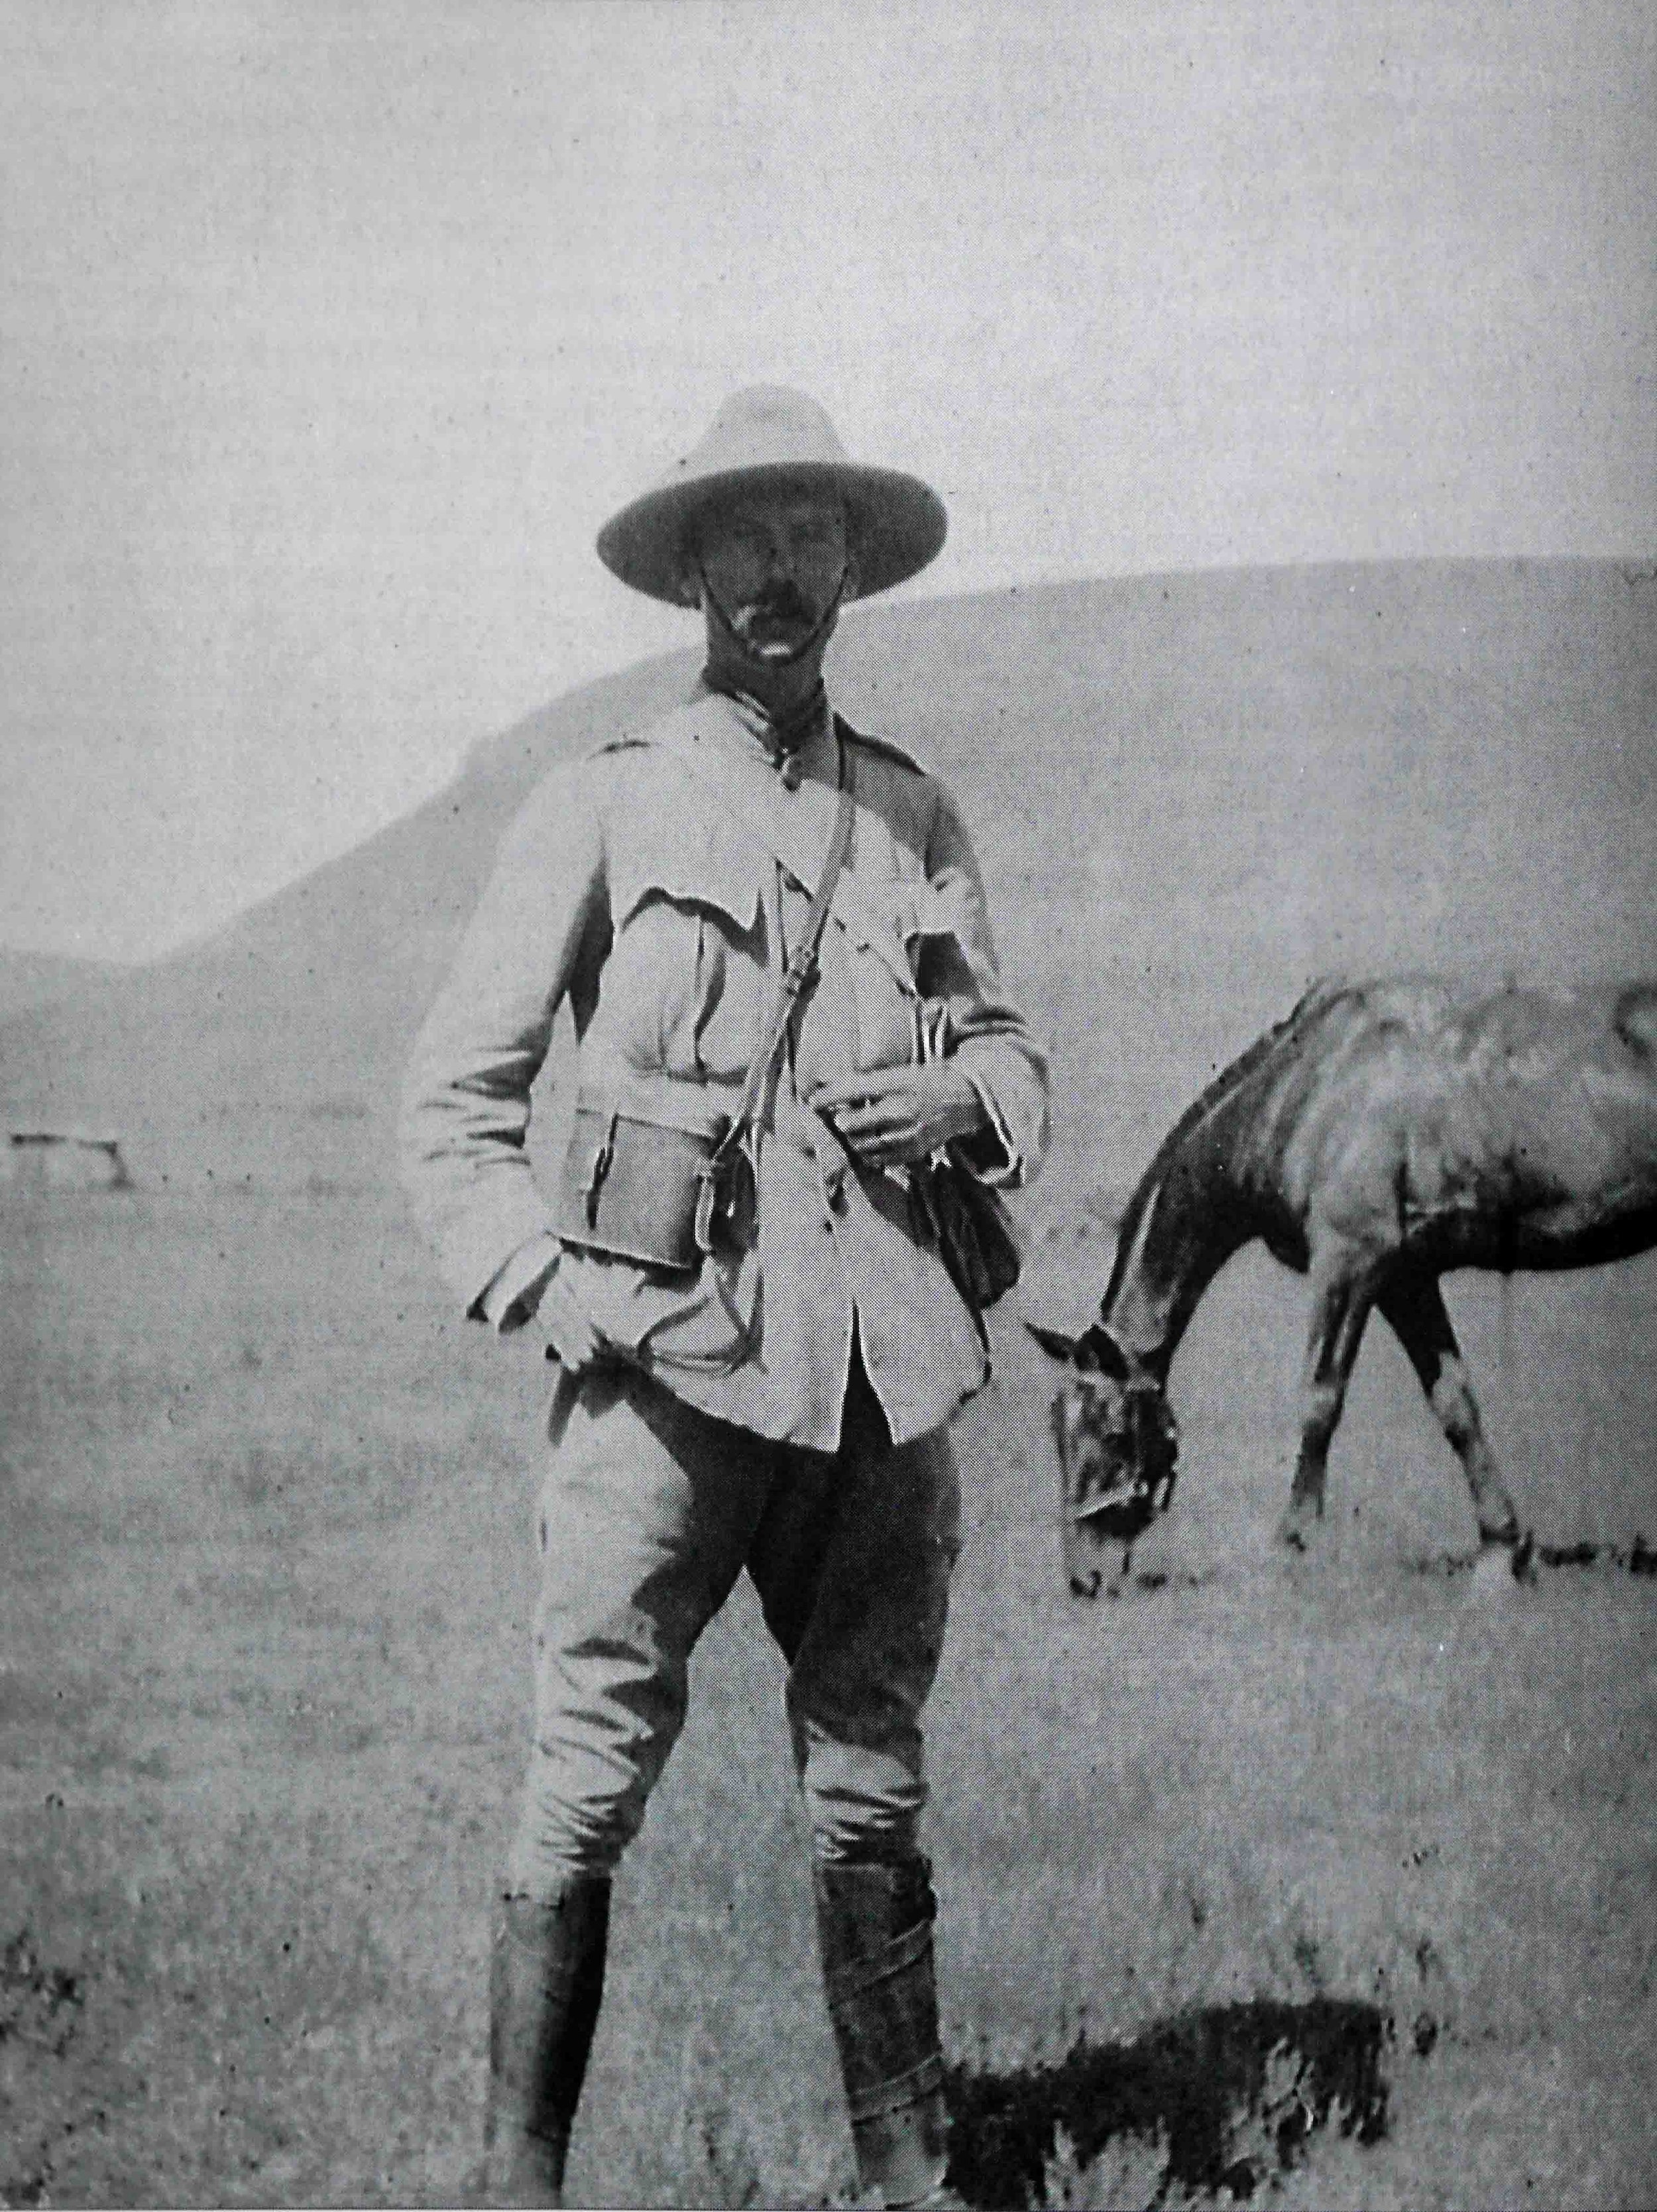 Captain Edward Robertson Gordon, 9th Lancers, in South Africa during the Boer War (1899-1902) (family collection).